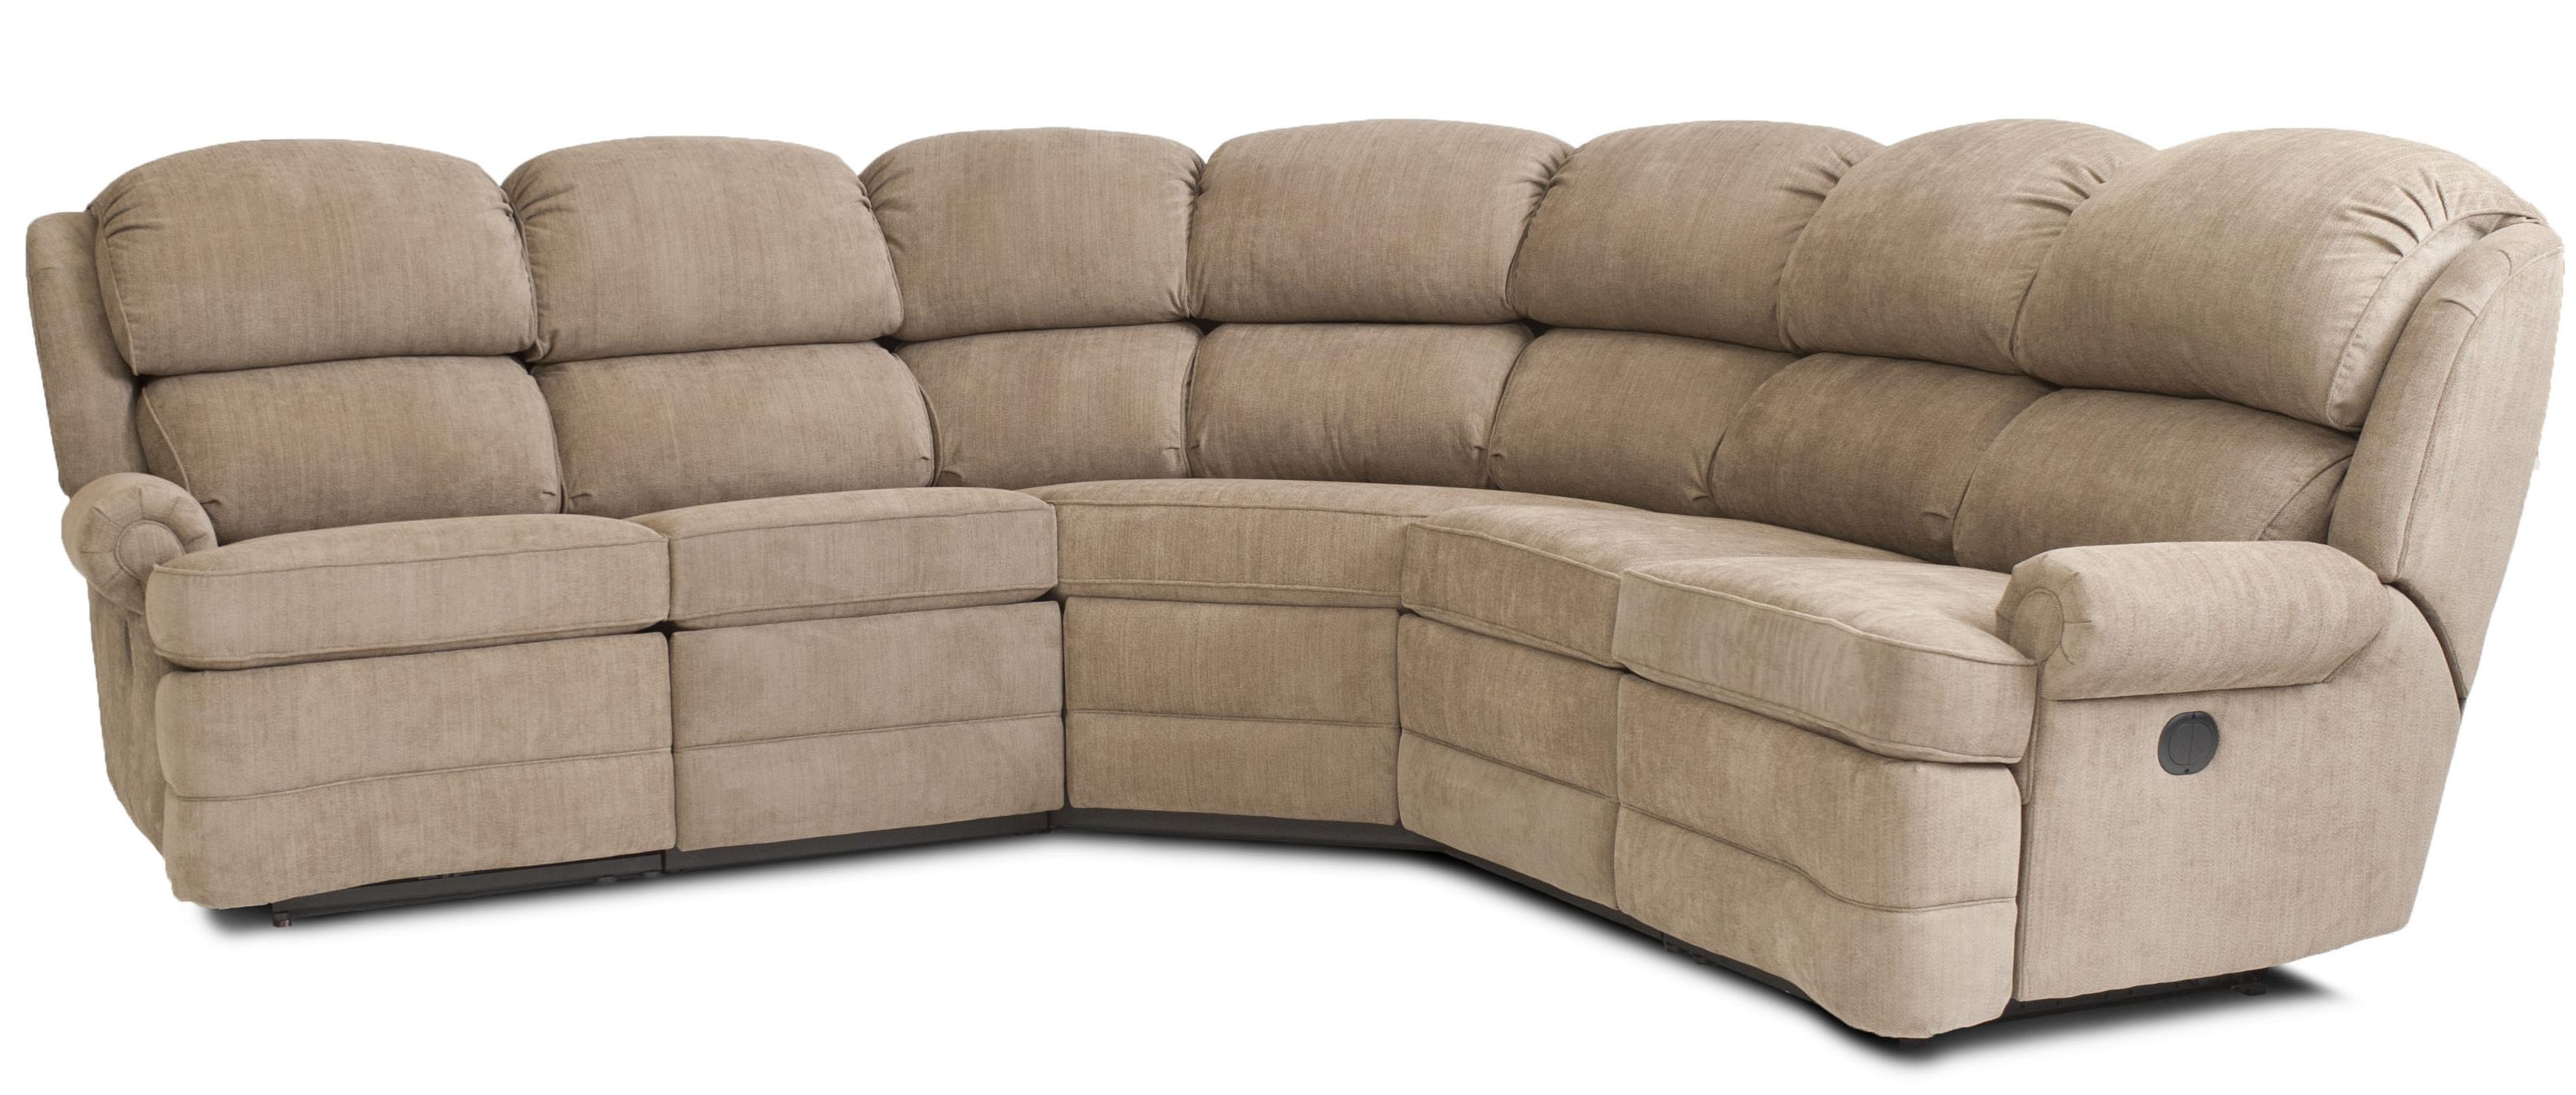 Beau Reclining Sectional Sofa